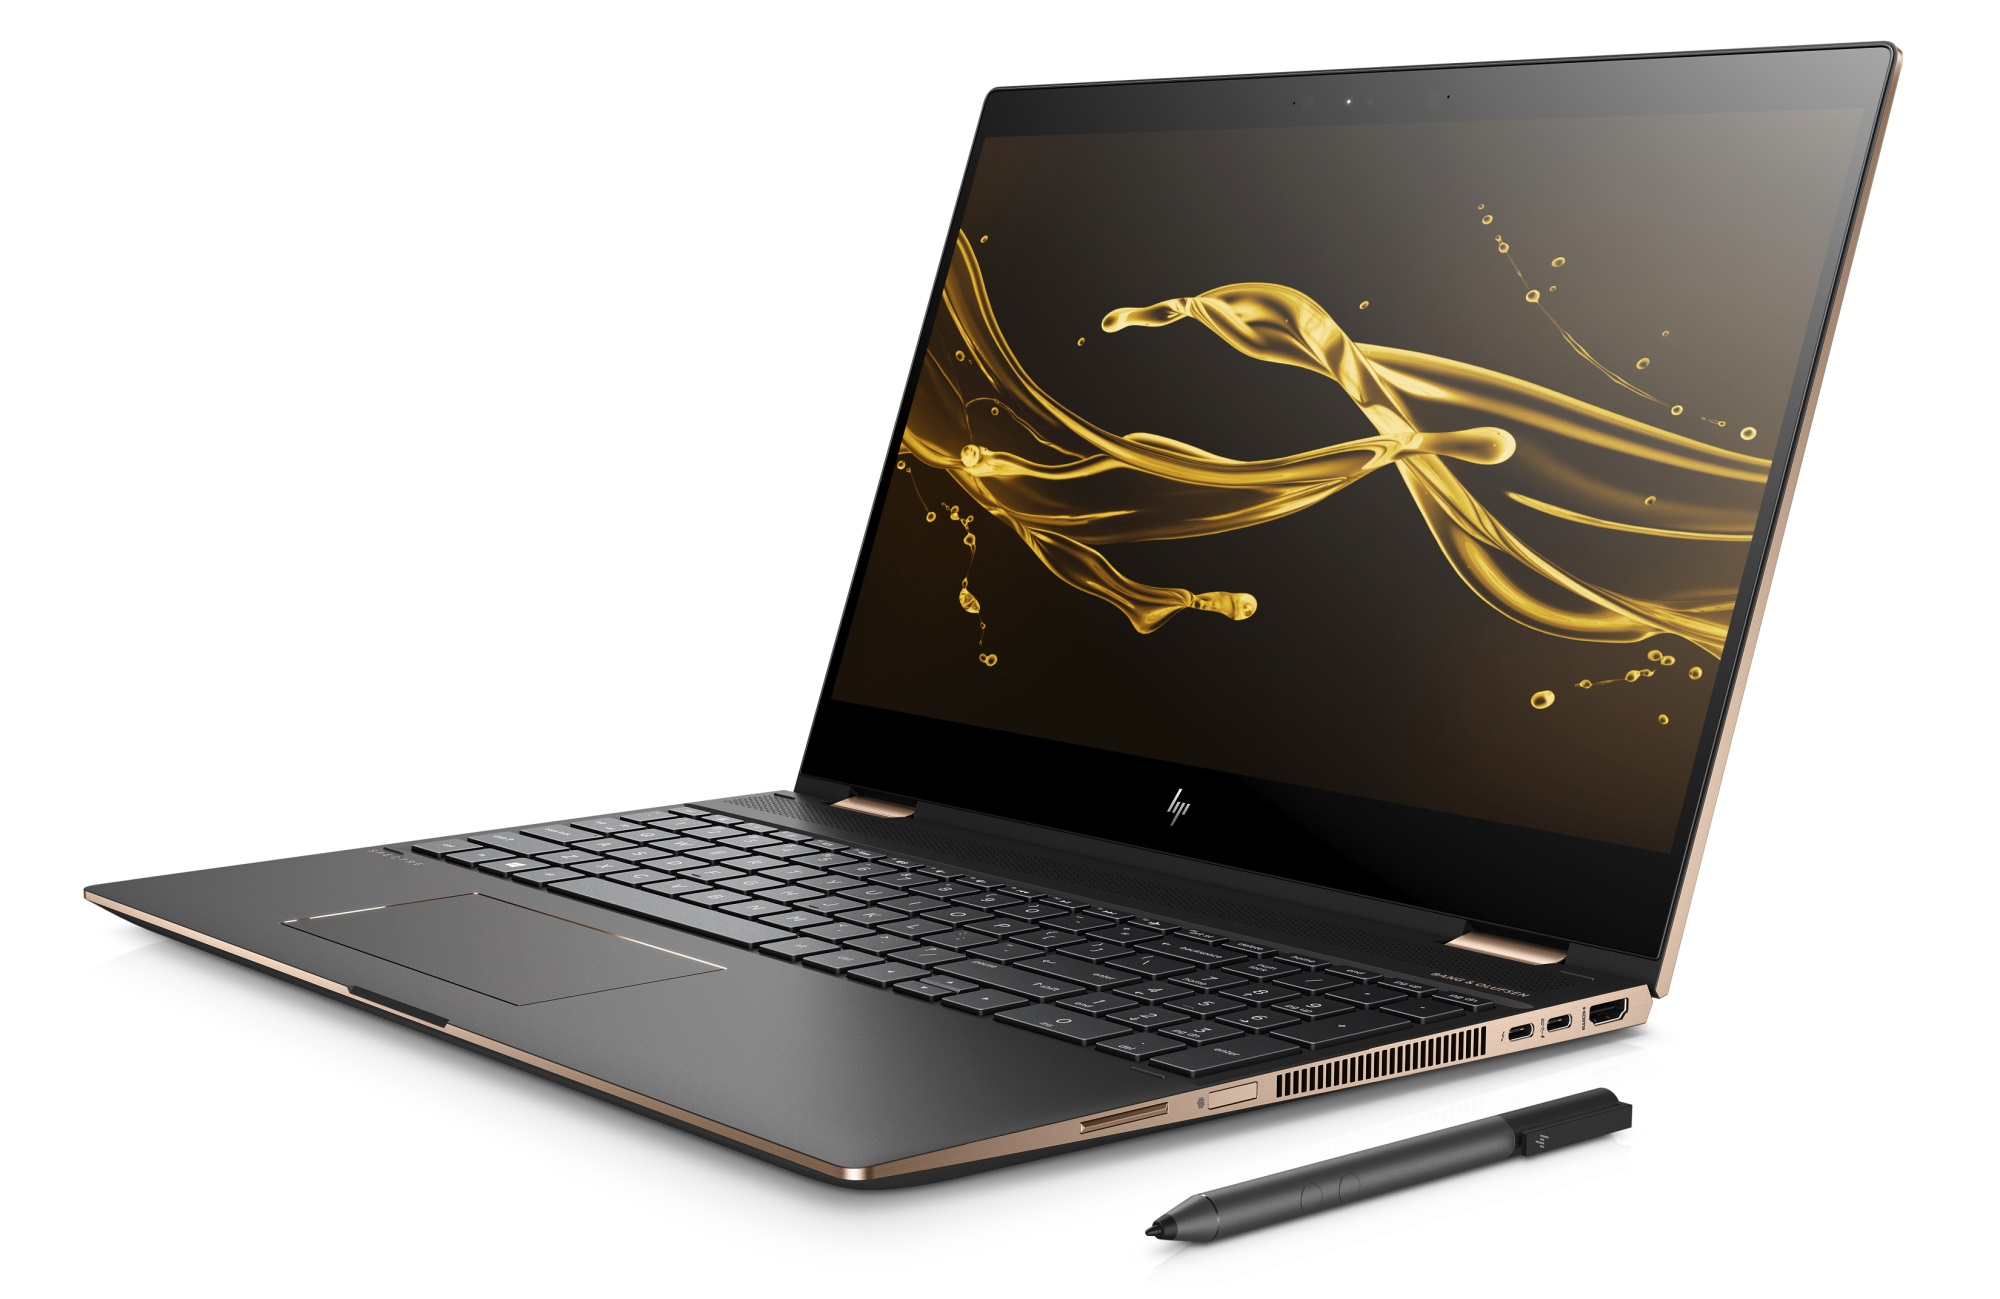 Dell XPS 13 9365 Core i5-7Y54, 8G, 256G SSD, 13.3 FHD, Touch, Win 10 - 26